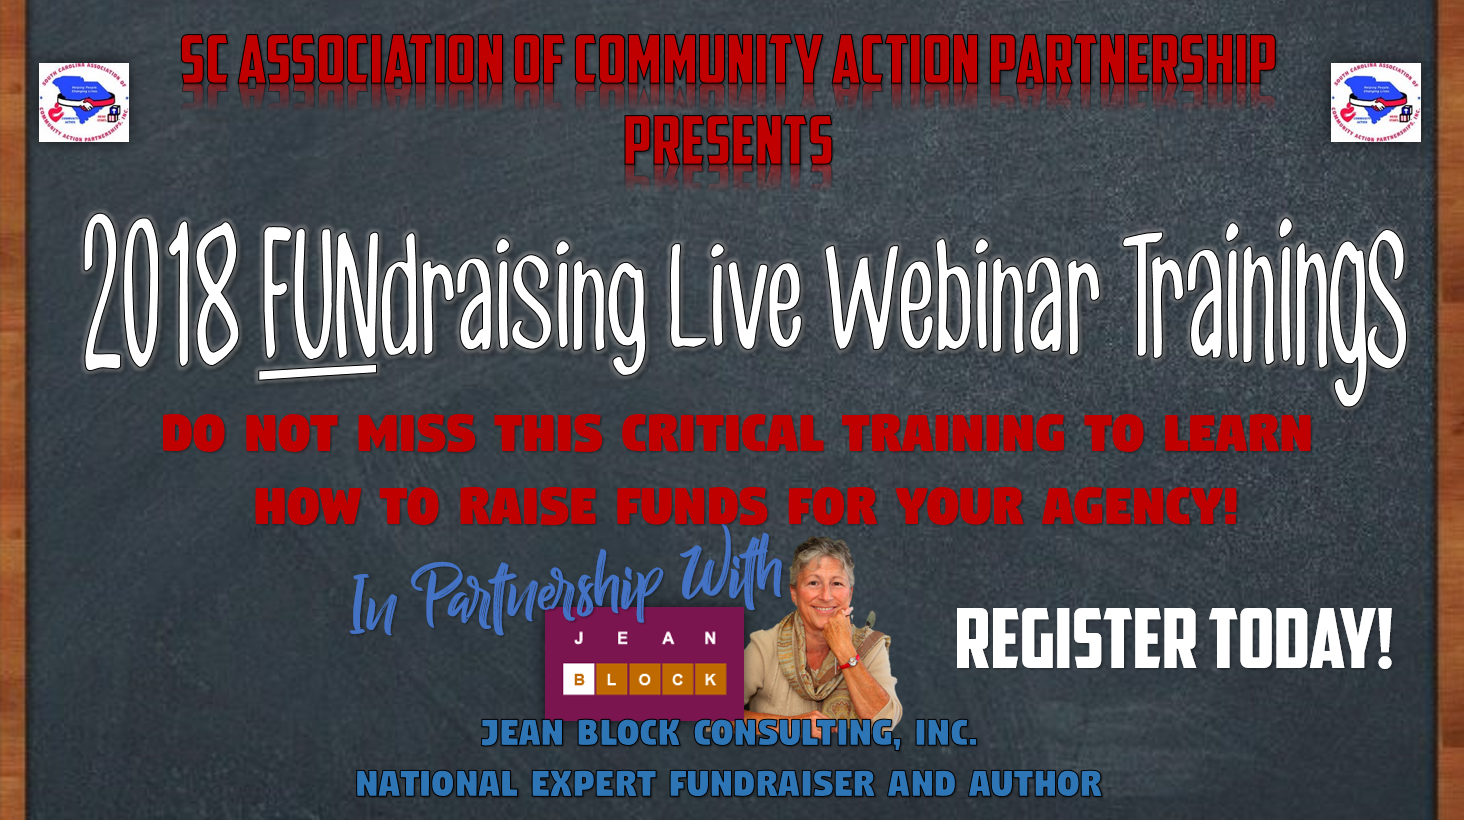 2018 Fundraising Live Webinar Training's for Funders and Non-profit Organizations